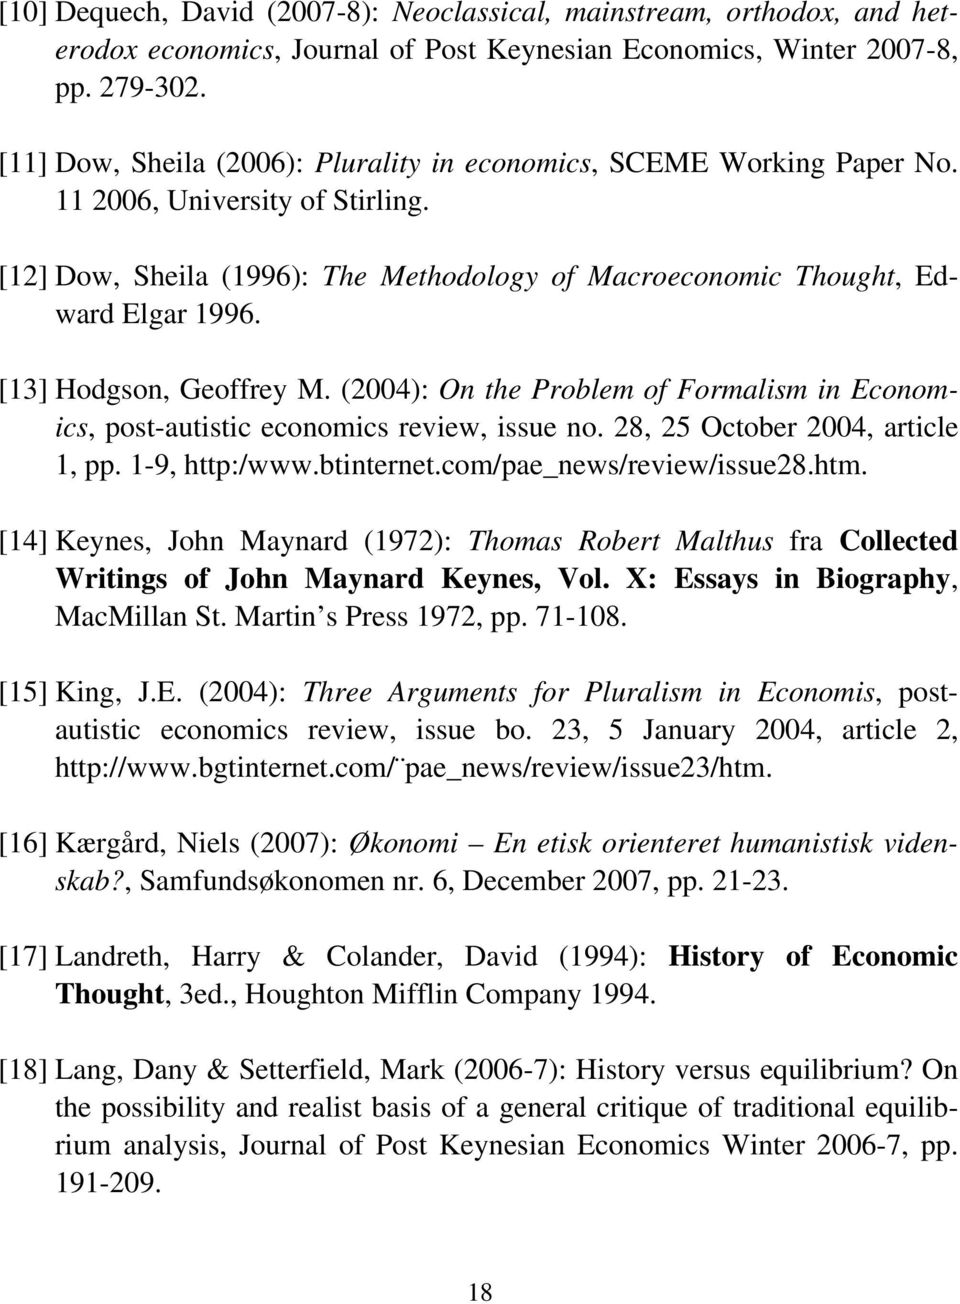 [13] Hodgson, Geoffrey M. (2004): On the Problem of Formalism in Economics, post-autistic economics review, issue no. 28, 25 October 2004, article 1, pp. 1-9, http:/www.btinternet.